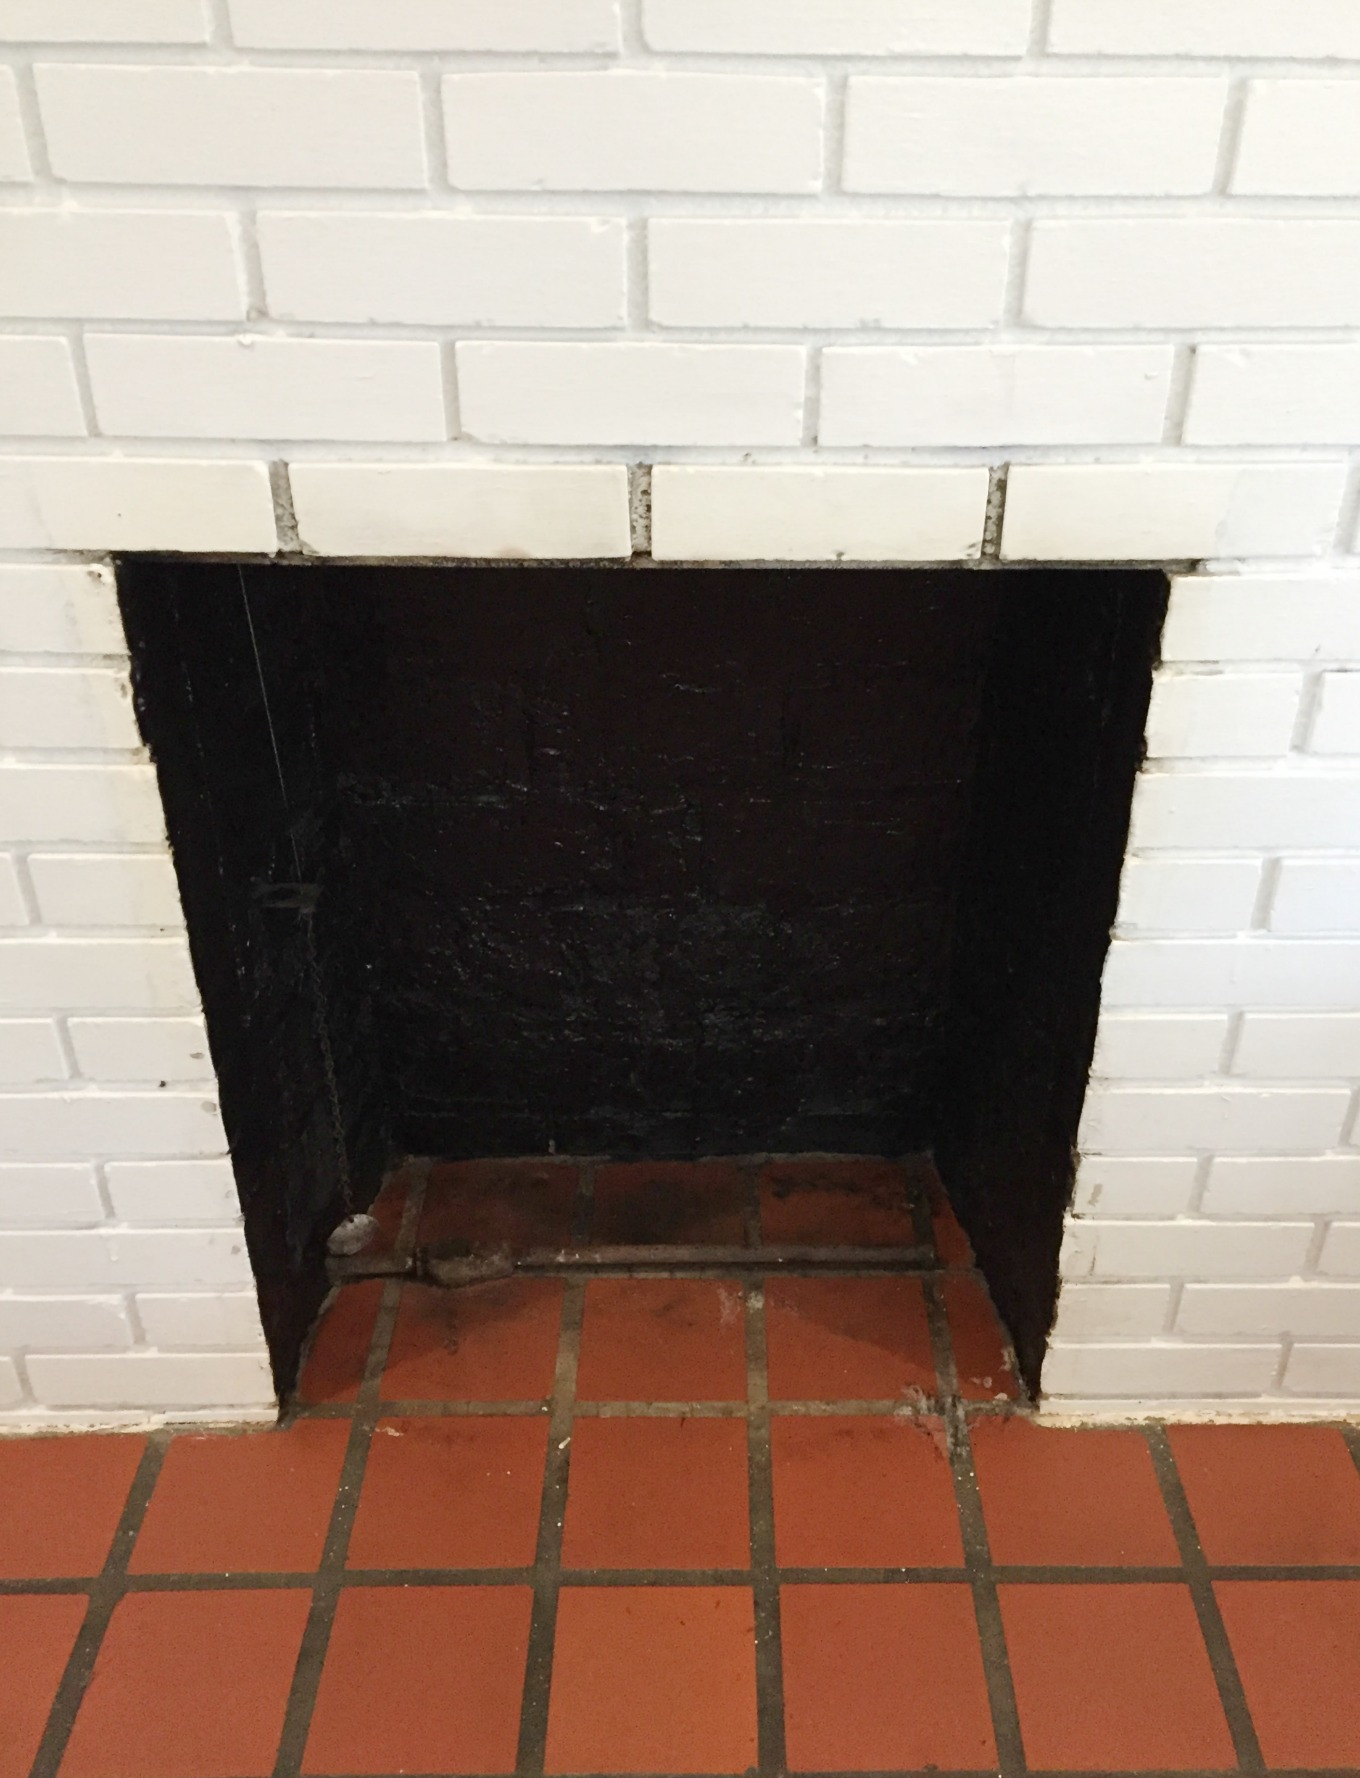 So much better after cleaning fireplace firebox - thediybungalow.com